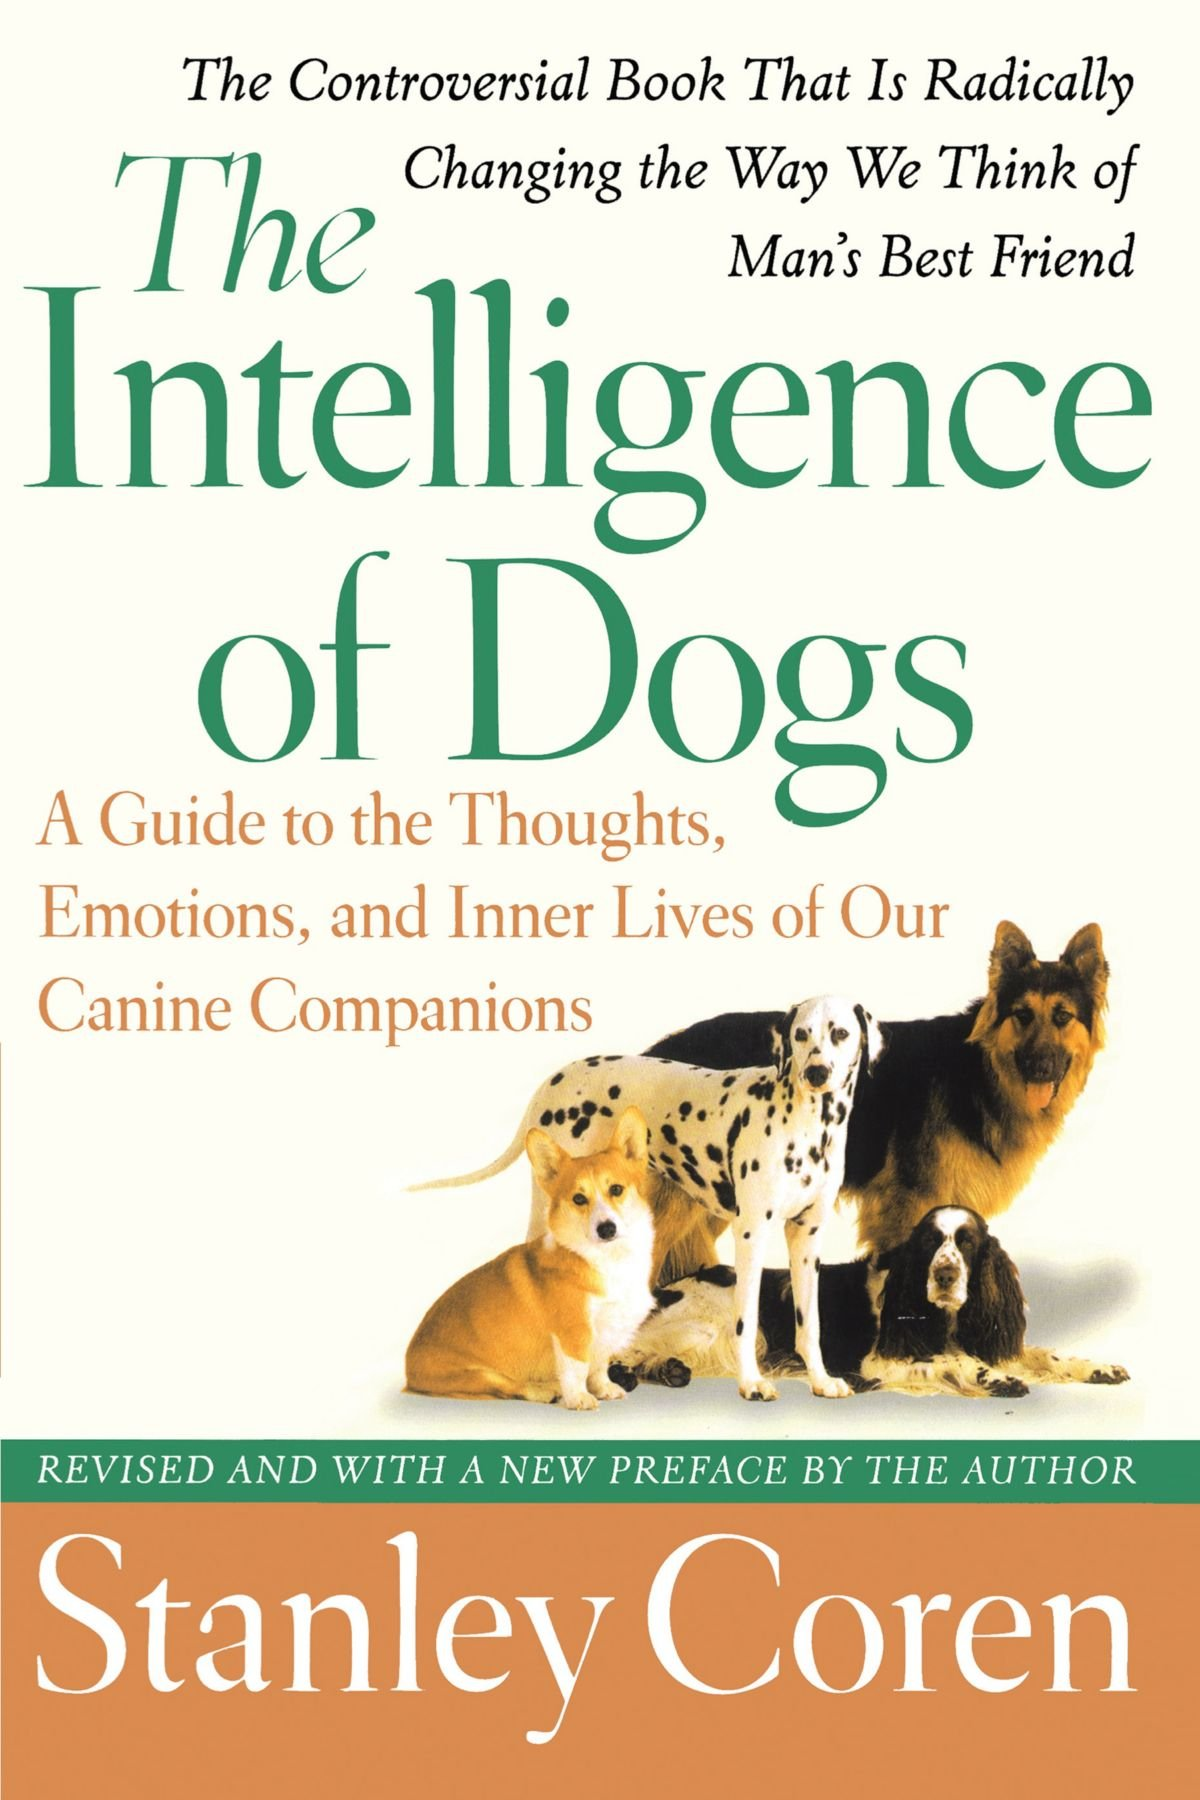 Image result for image, photo, book, The Intelligence of Dogs,